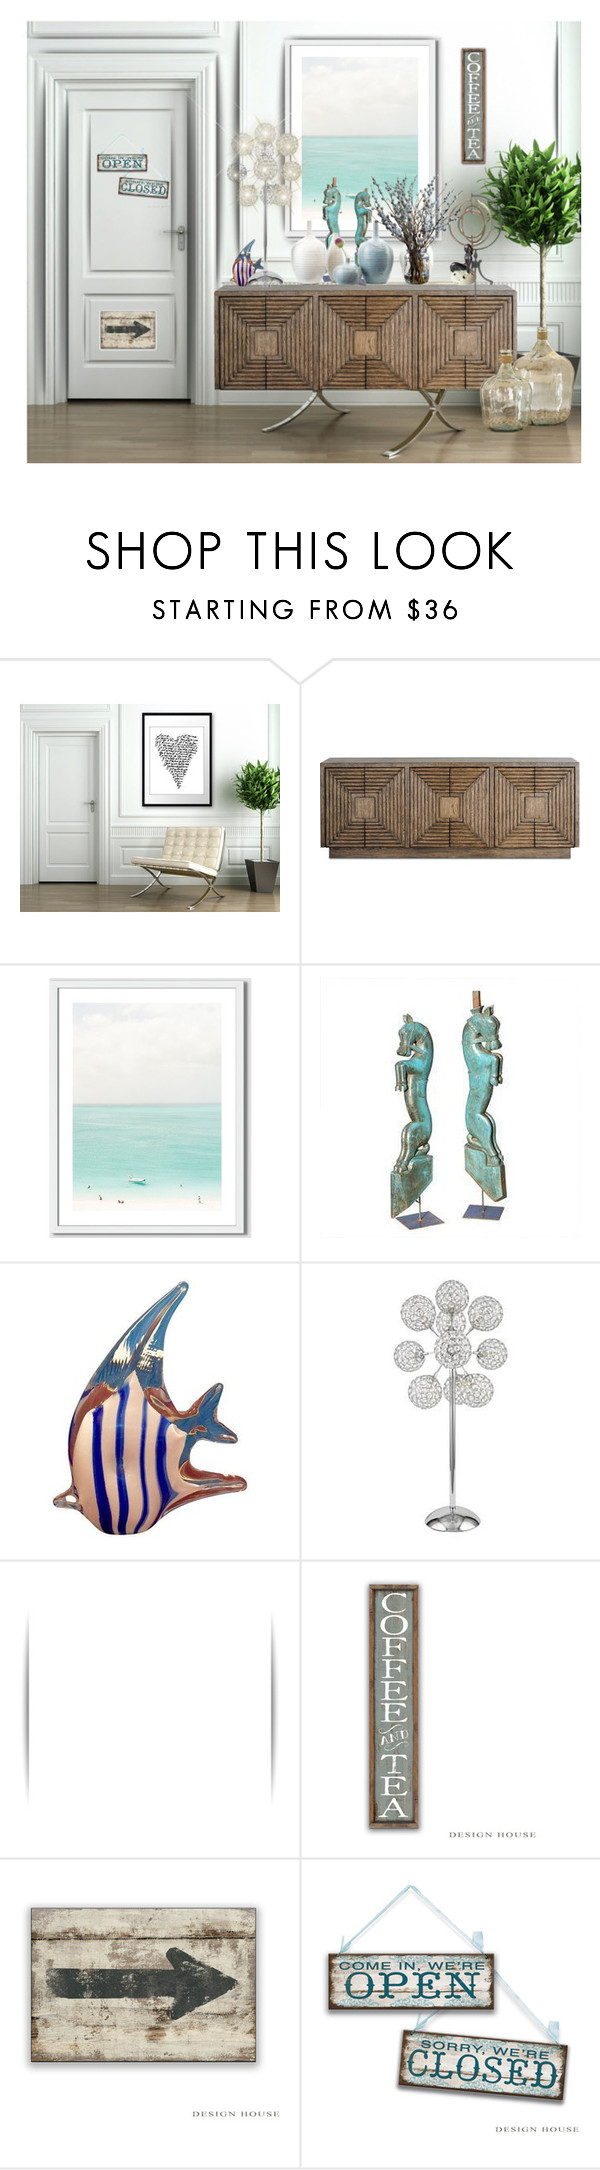 """Sin título #532"" by yblacasa on Polyvore featuring interior, interiors, interior design, hogar, home decor, interior decorating, A2 by Aerosoles, Currey & Company, West Elm y Murano"